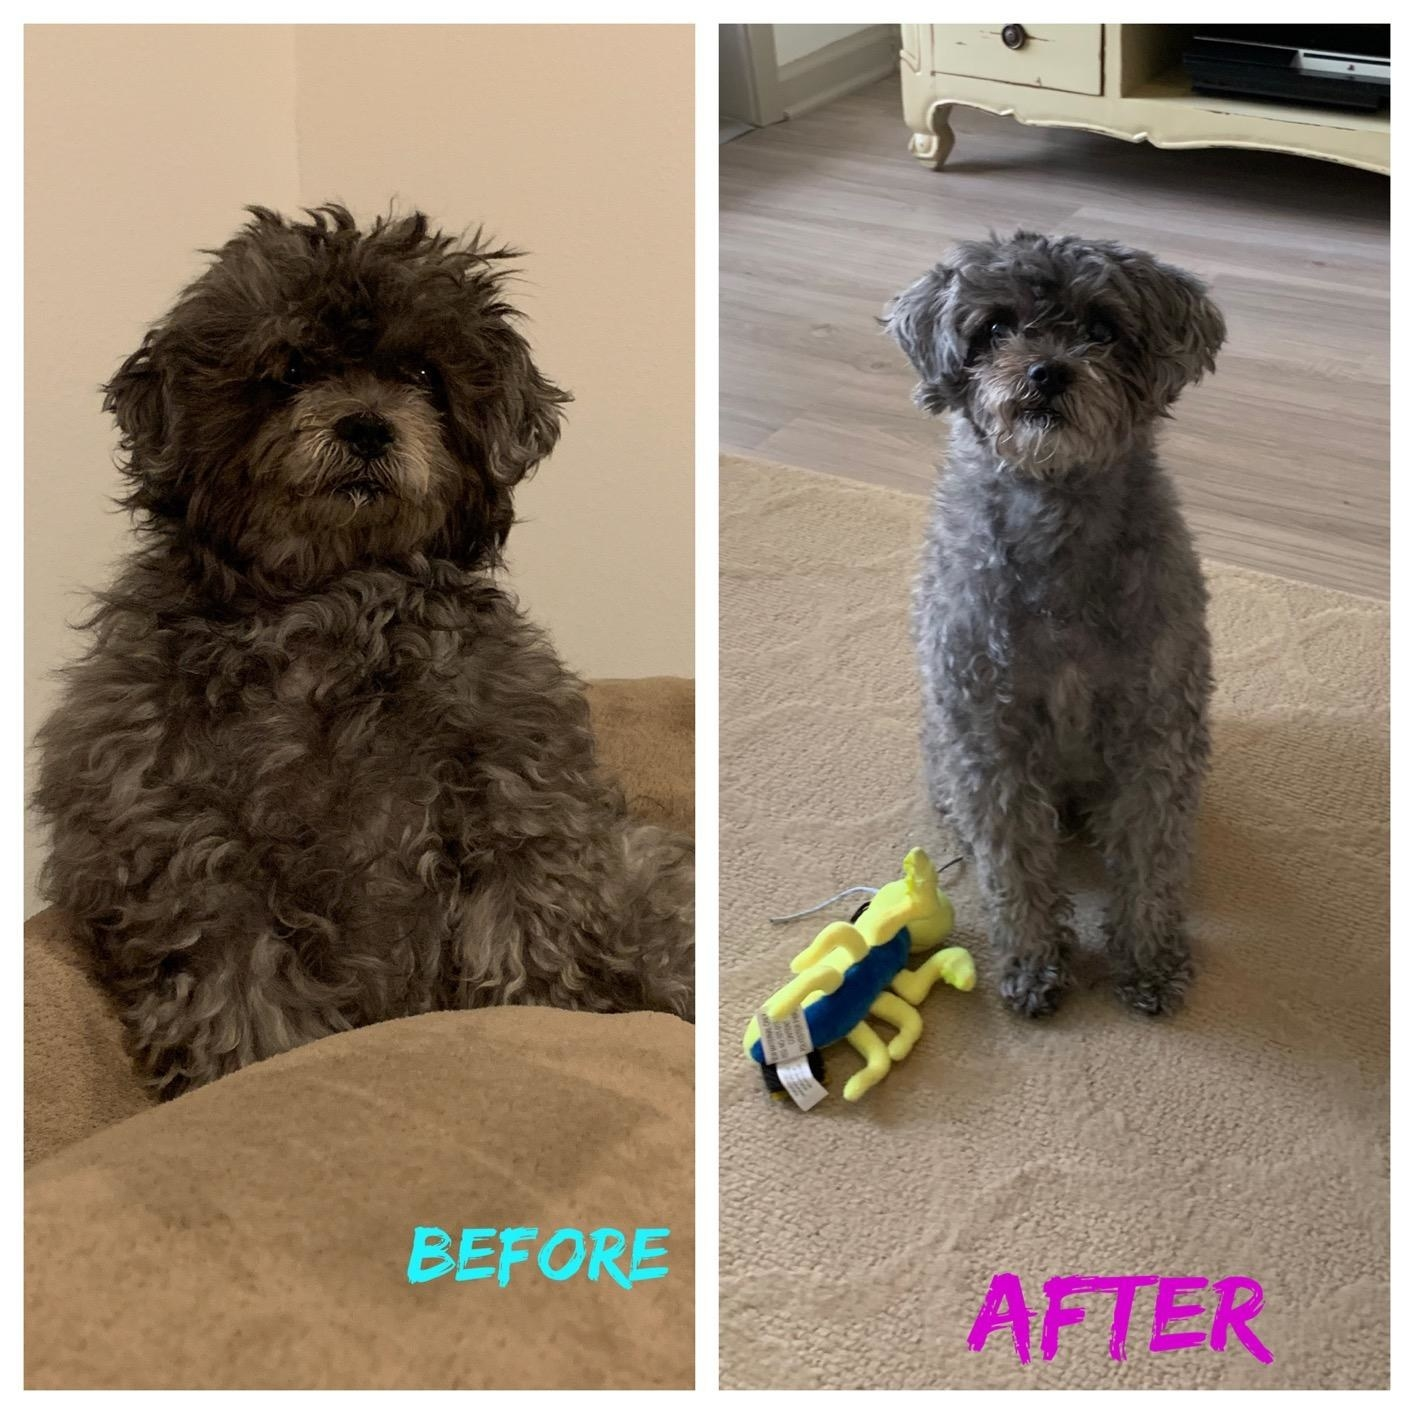 Before photo of reviewer's dog with knotted, messy fur and after photo of the same dog looking neatly trimmed